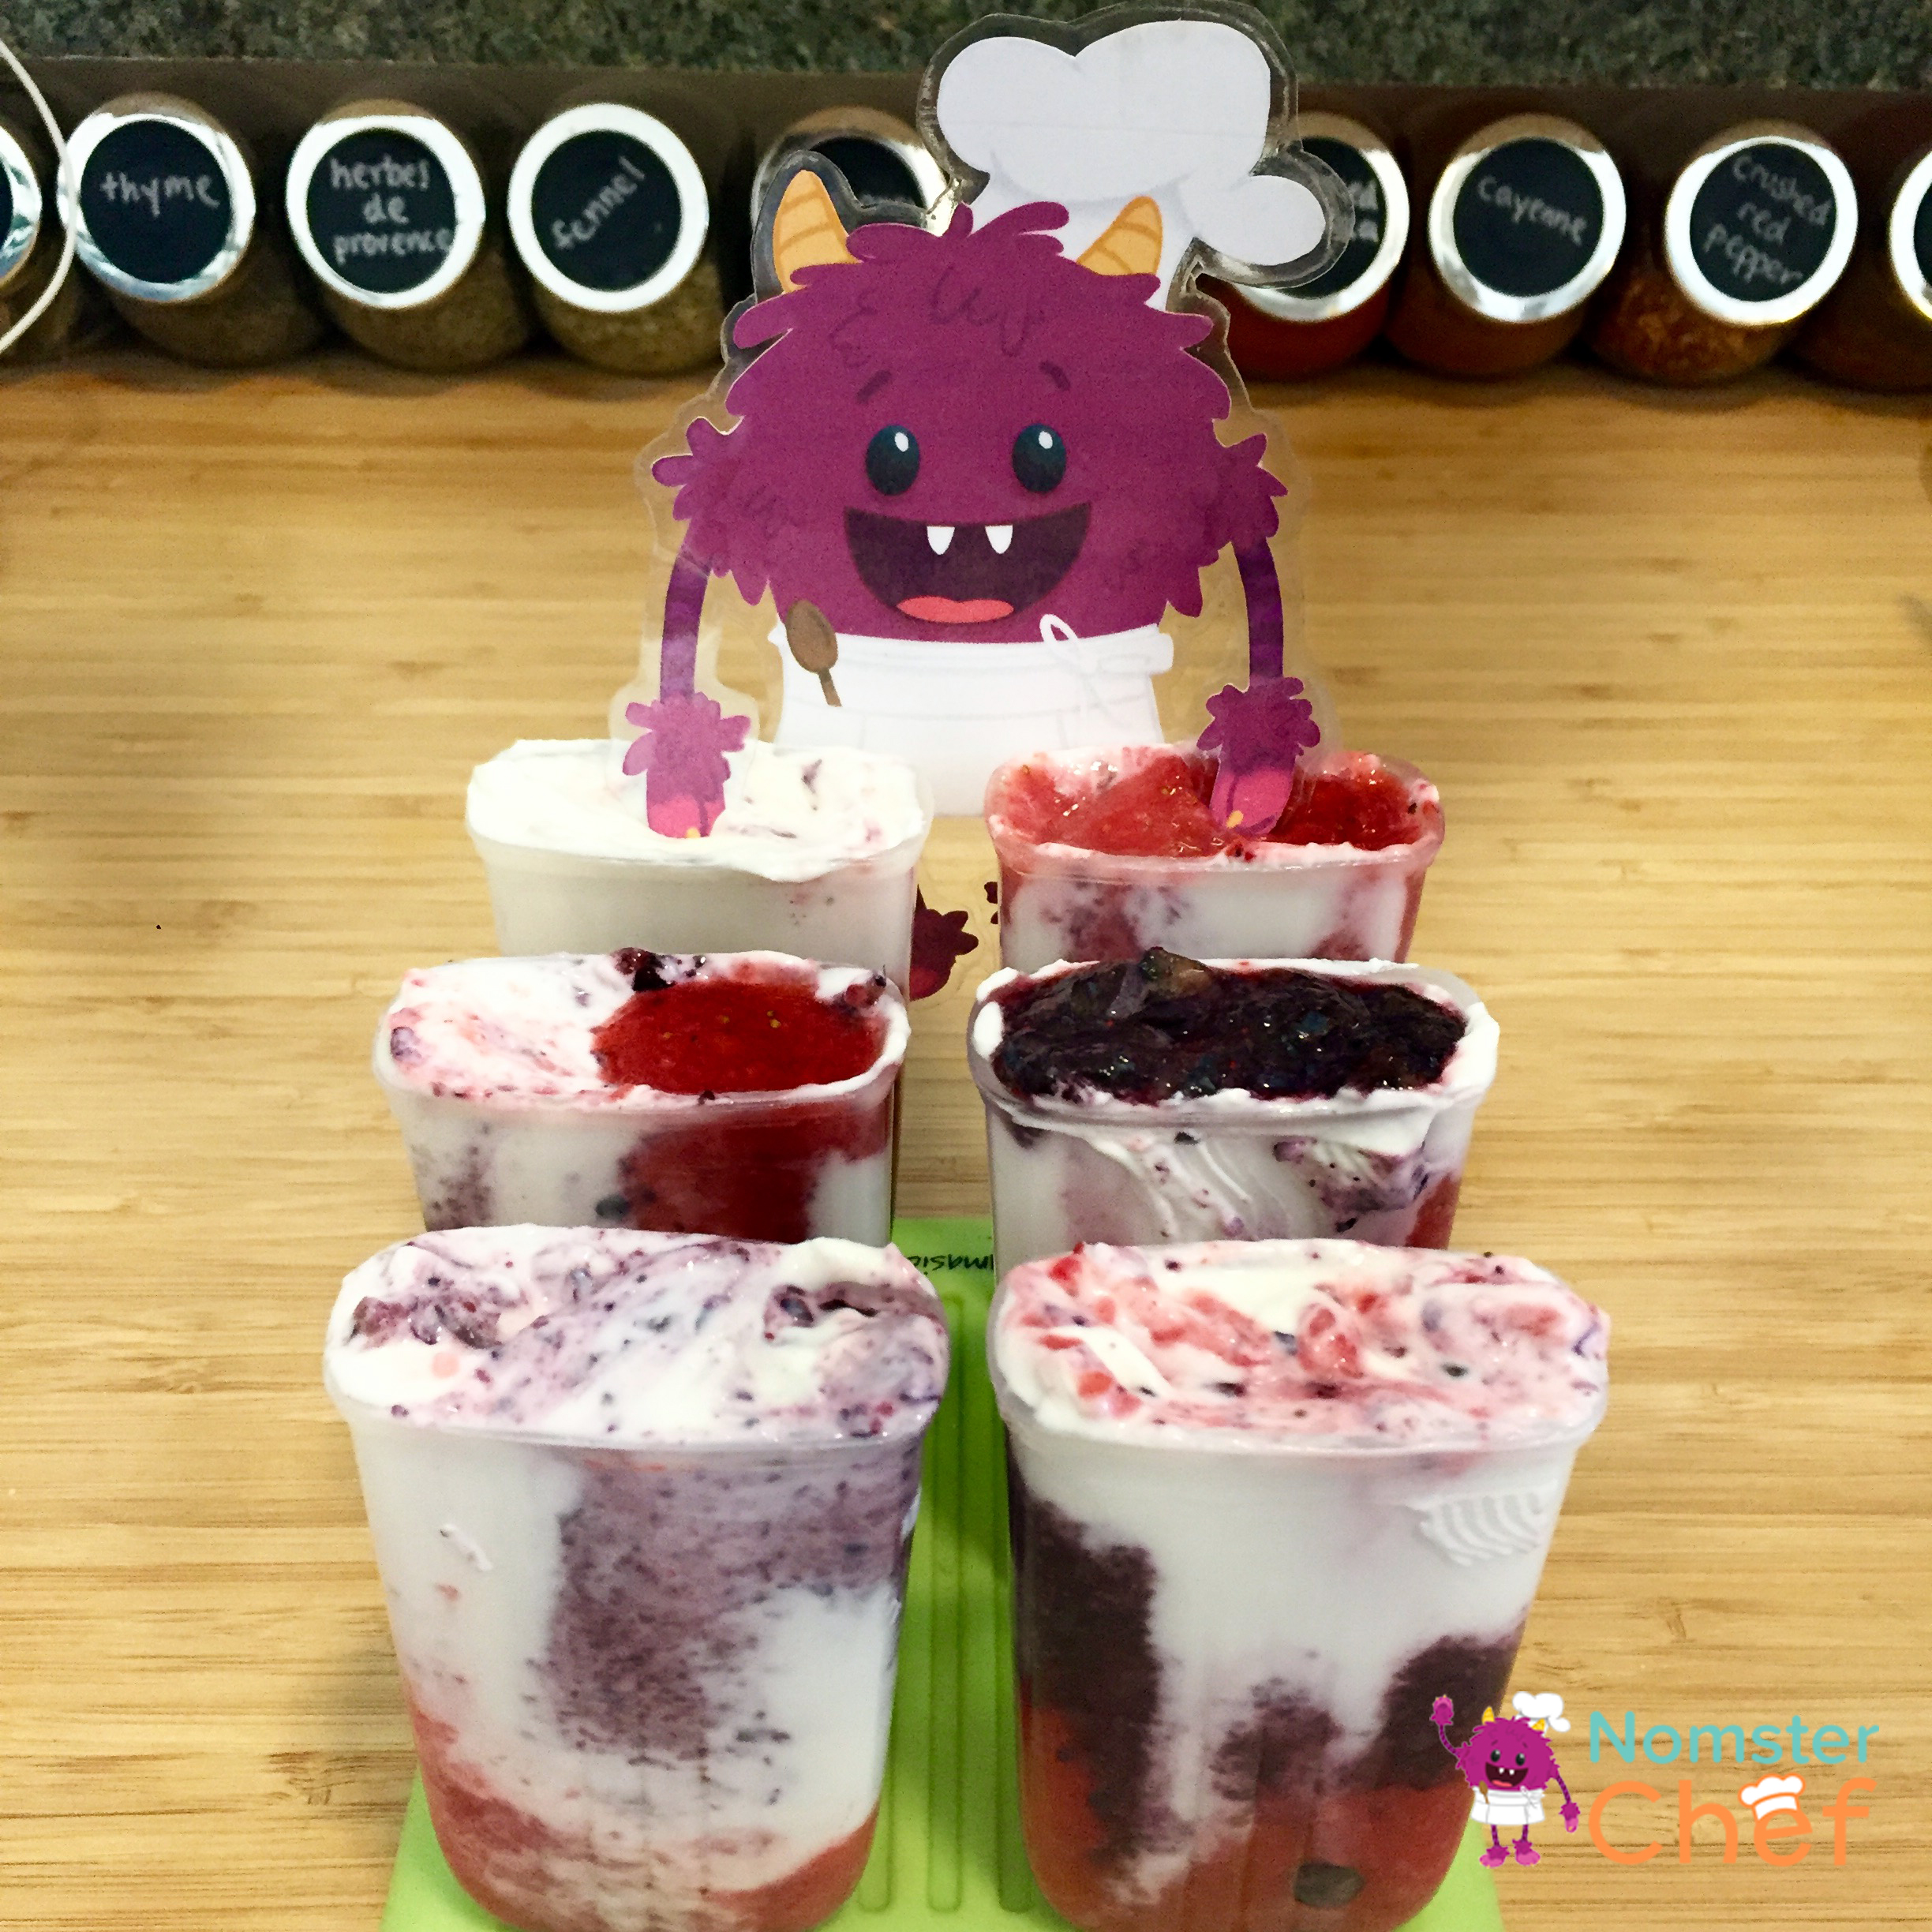 Popsicle molds-4th of July Ice Pops - Nomster Chef Blog Recipe